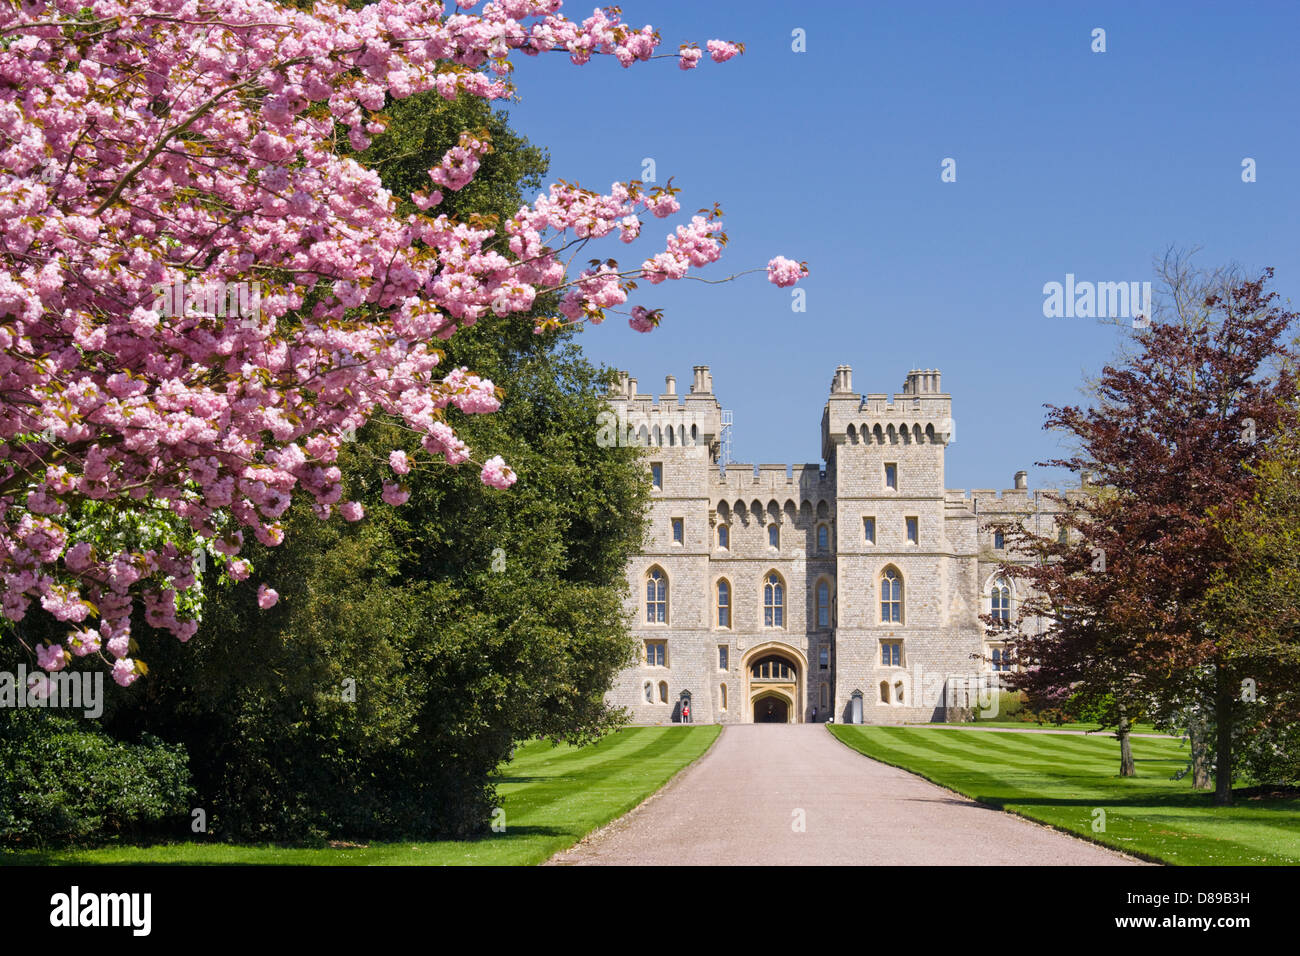 Windsor Castle, Berkshire, UK. - Stock Image